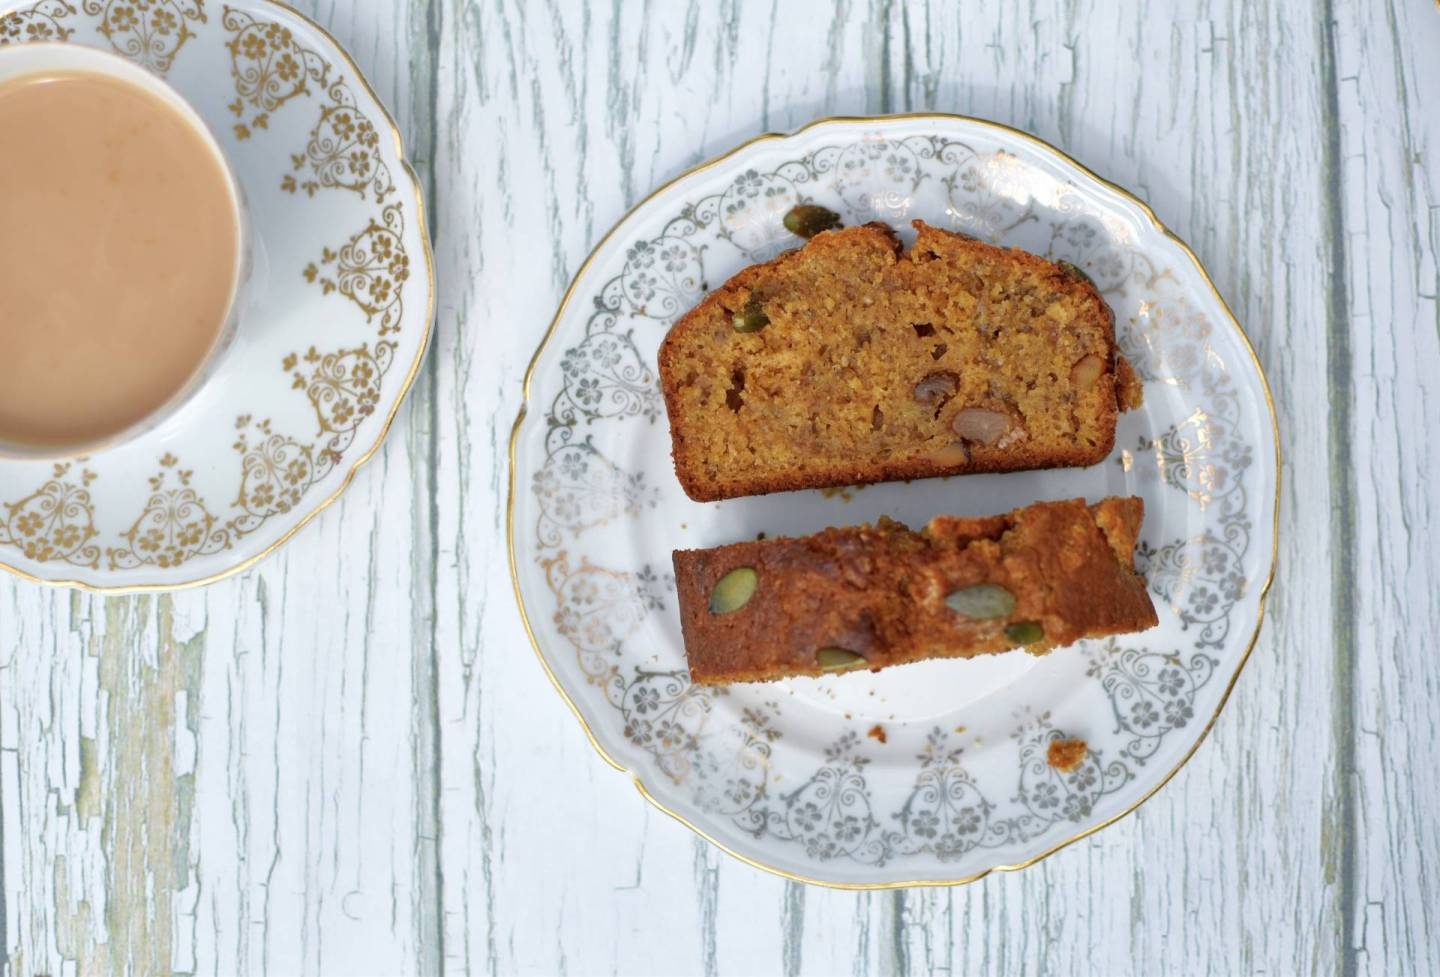 Banana, Pumpkin Seed and Walnut Tea Loaf